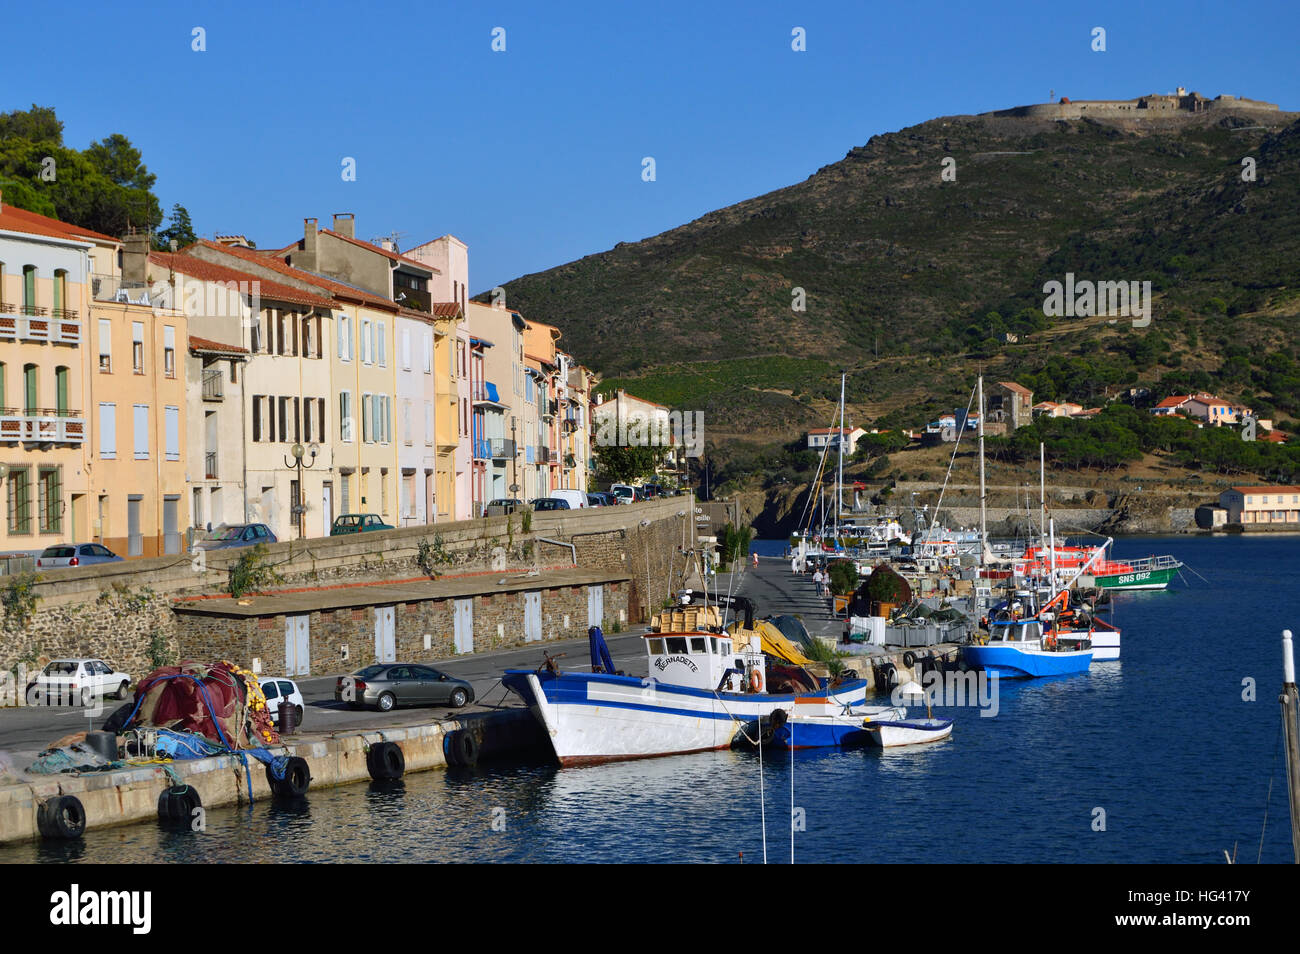 Boats In The Harbour At PortVendres France Stock Photo - Location port vendres